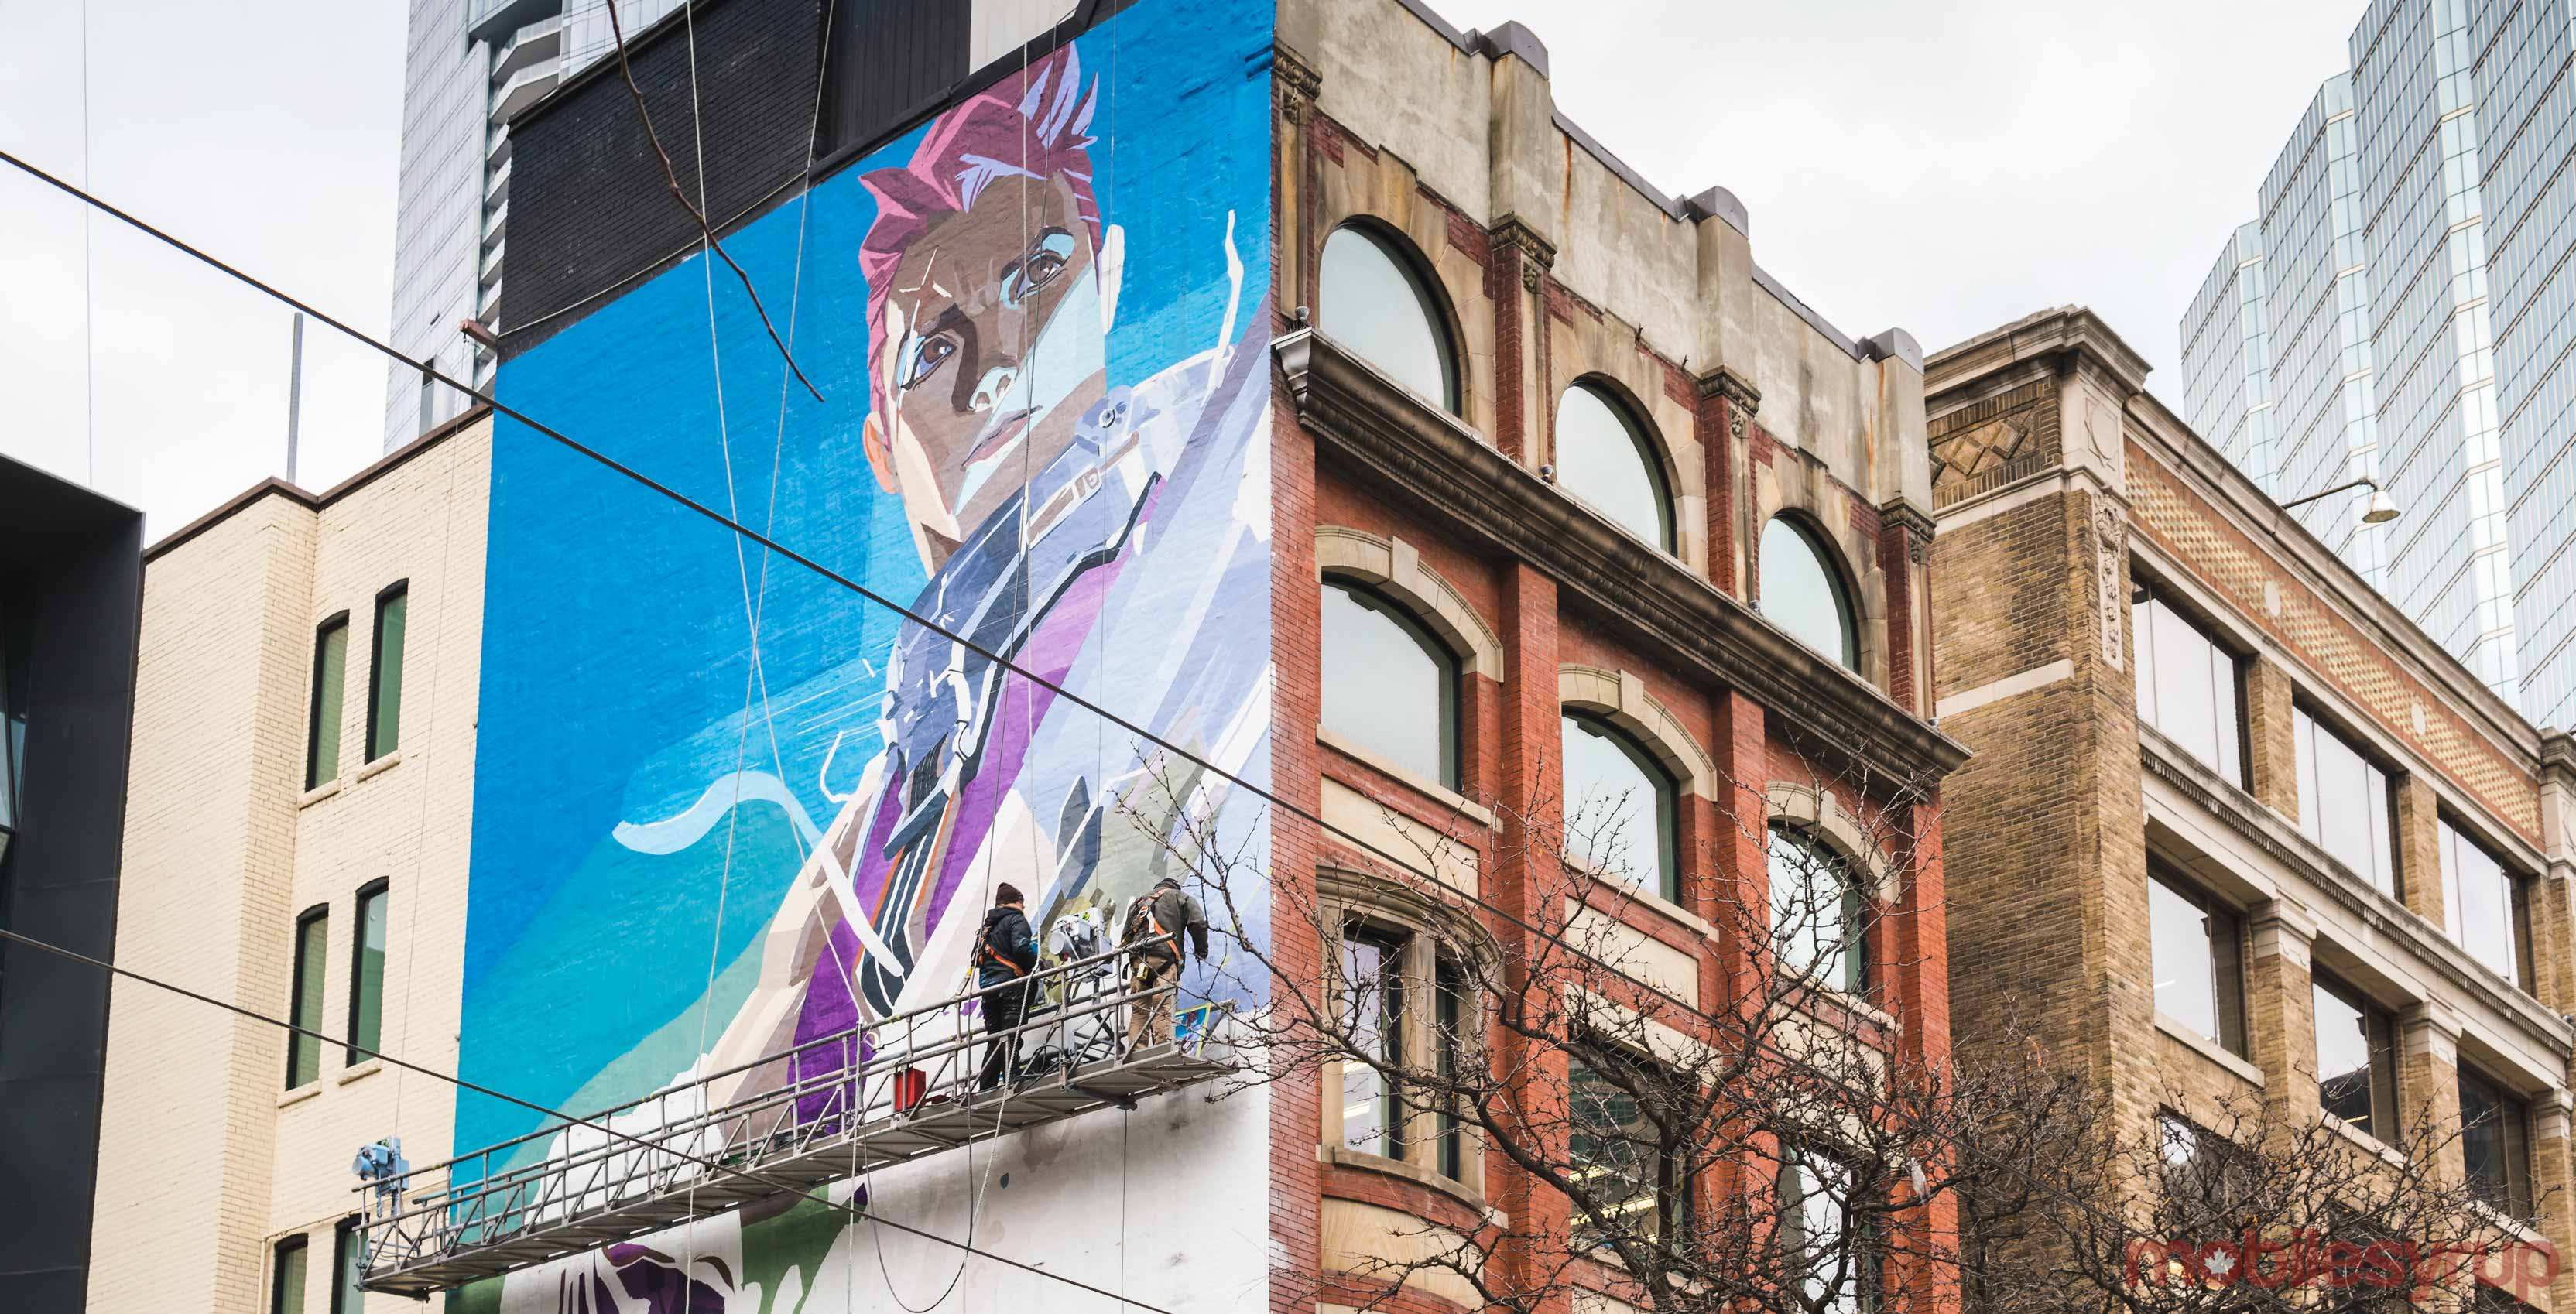 Beautiful 'Overwatch' mural appears in downtown Toronto